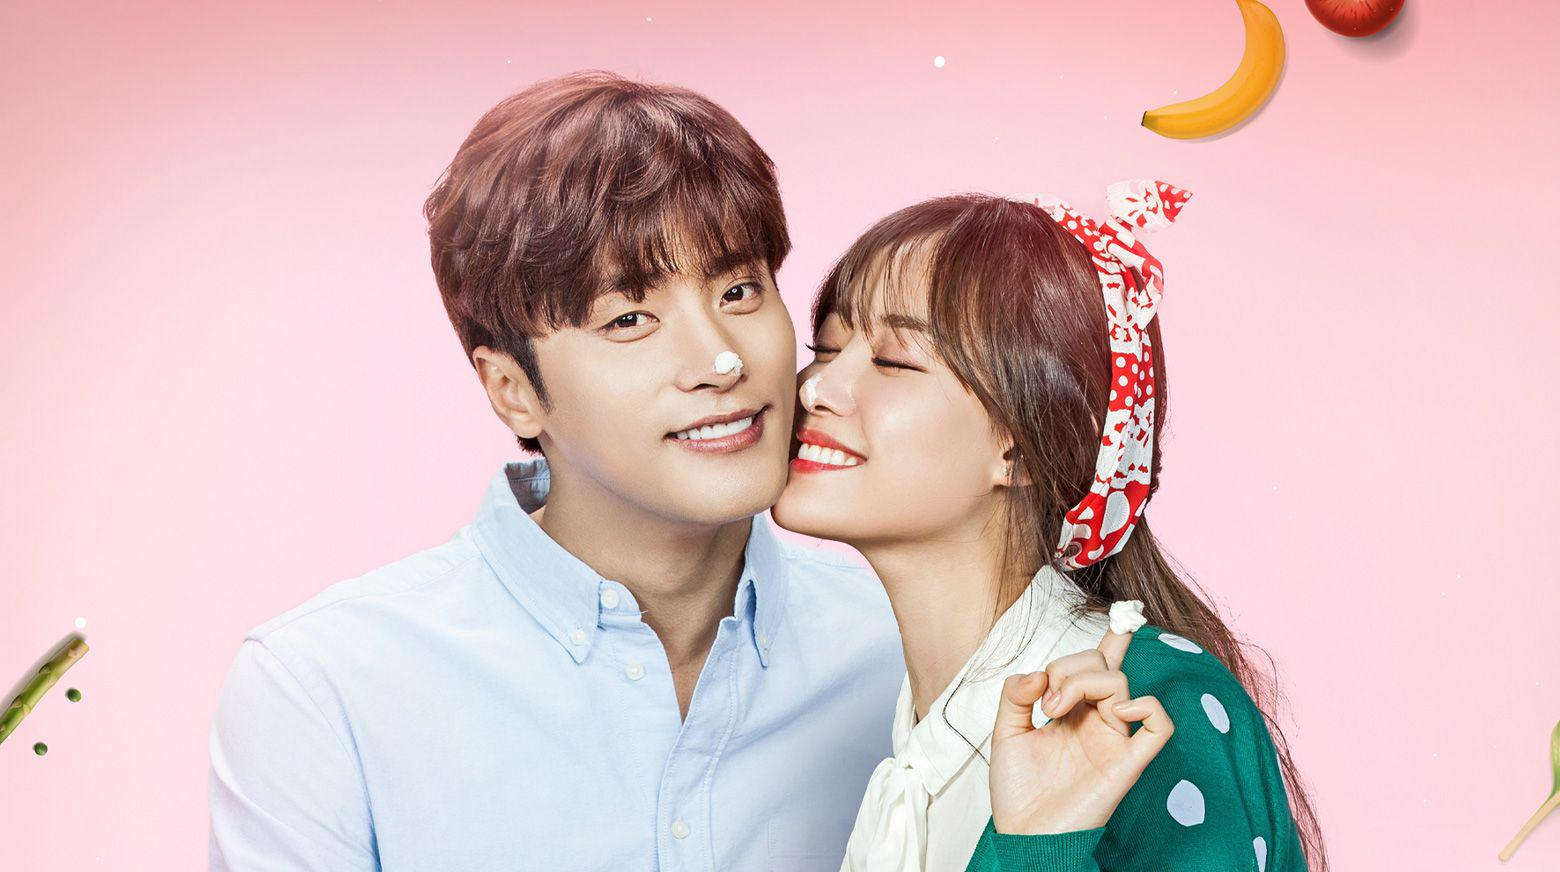 4Udrama my secret romance episode 8 - 애타는 로맨스 - watch full